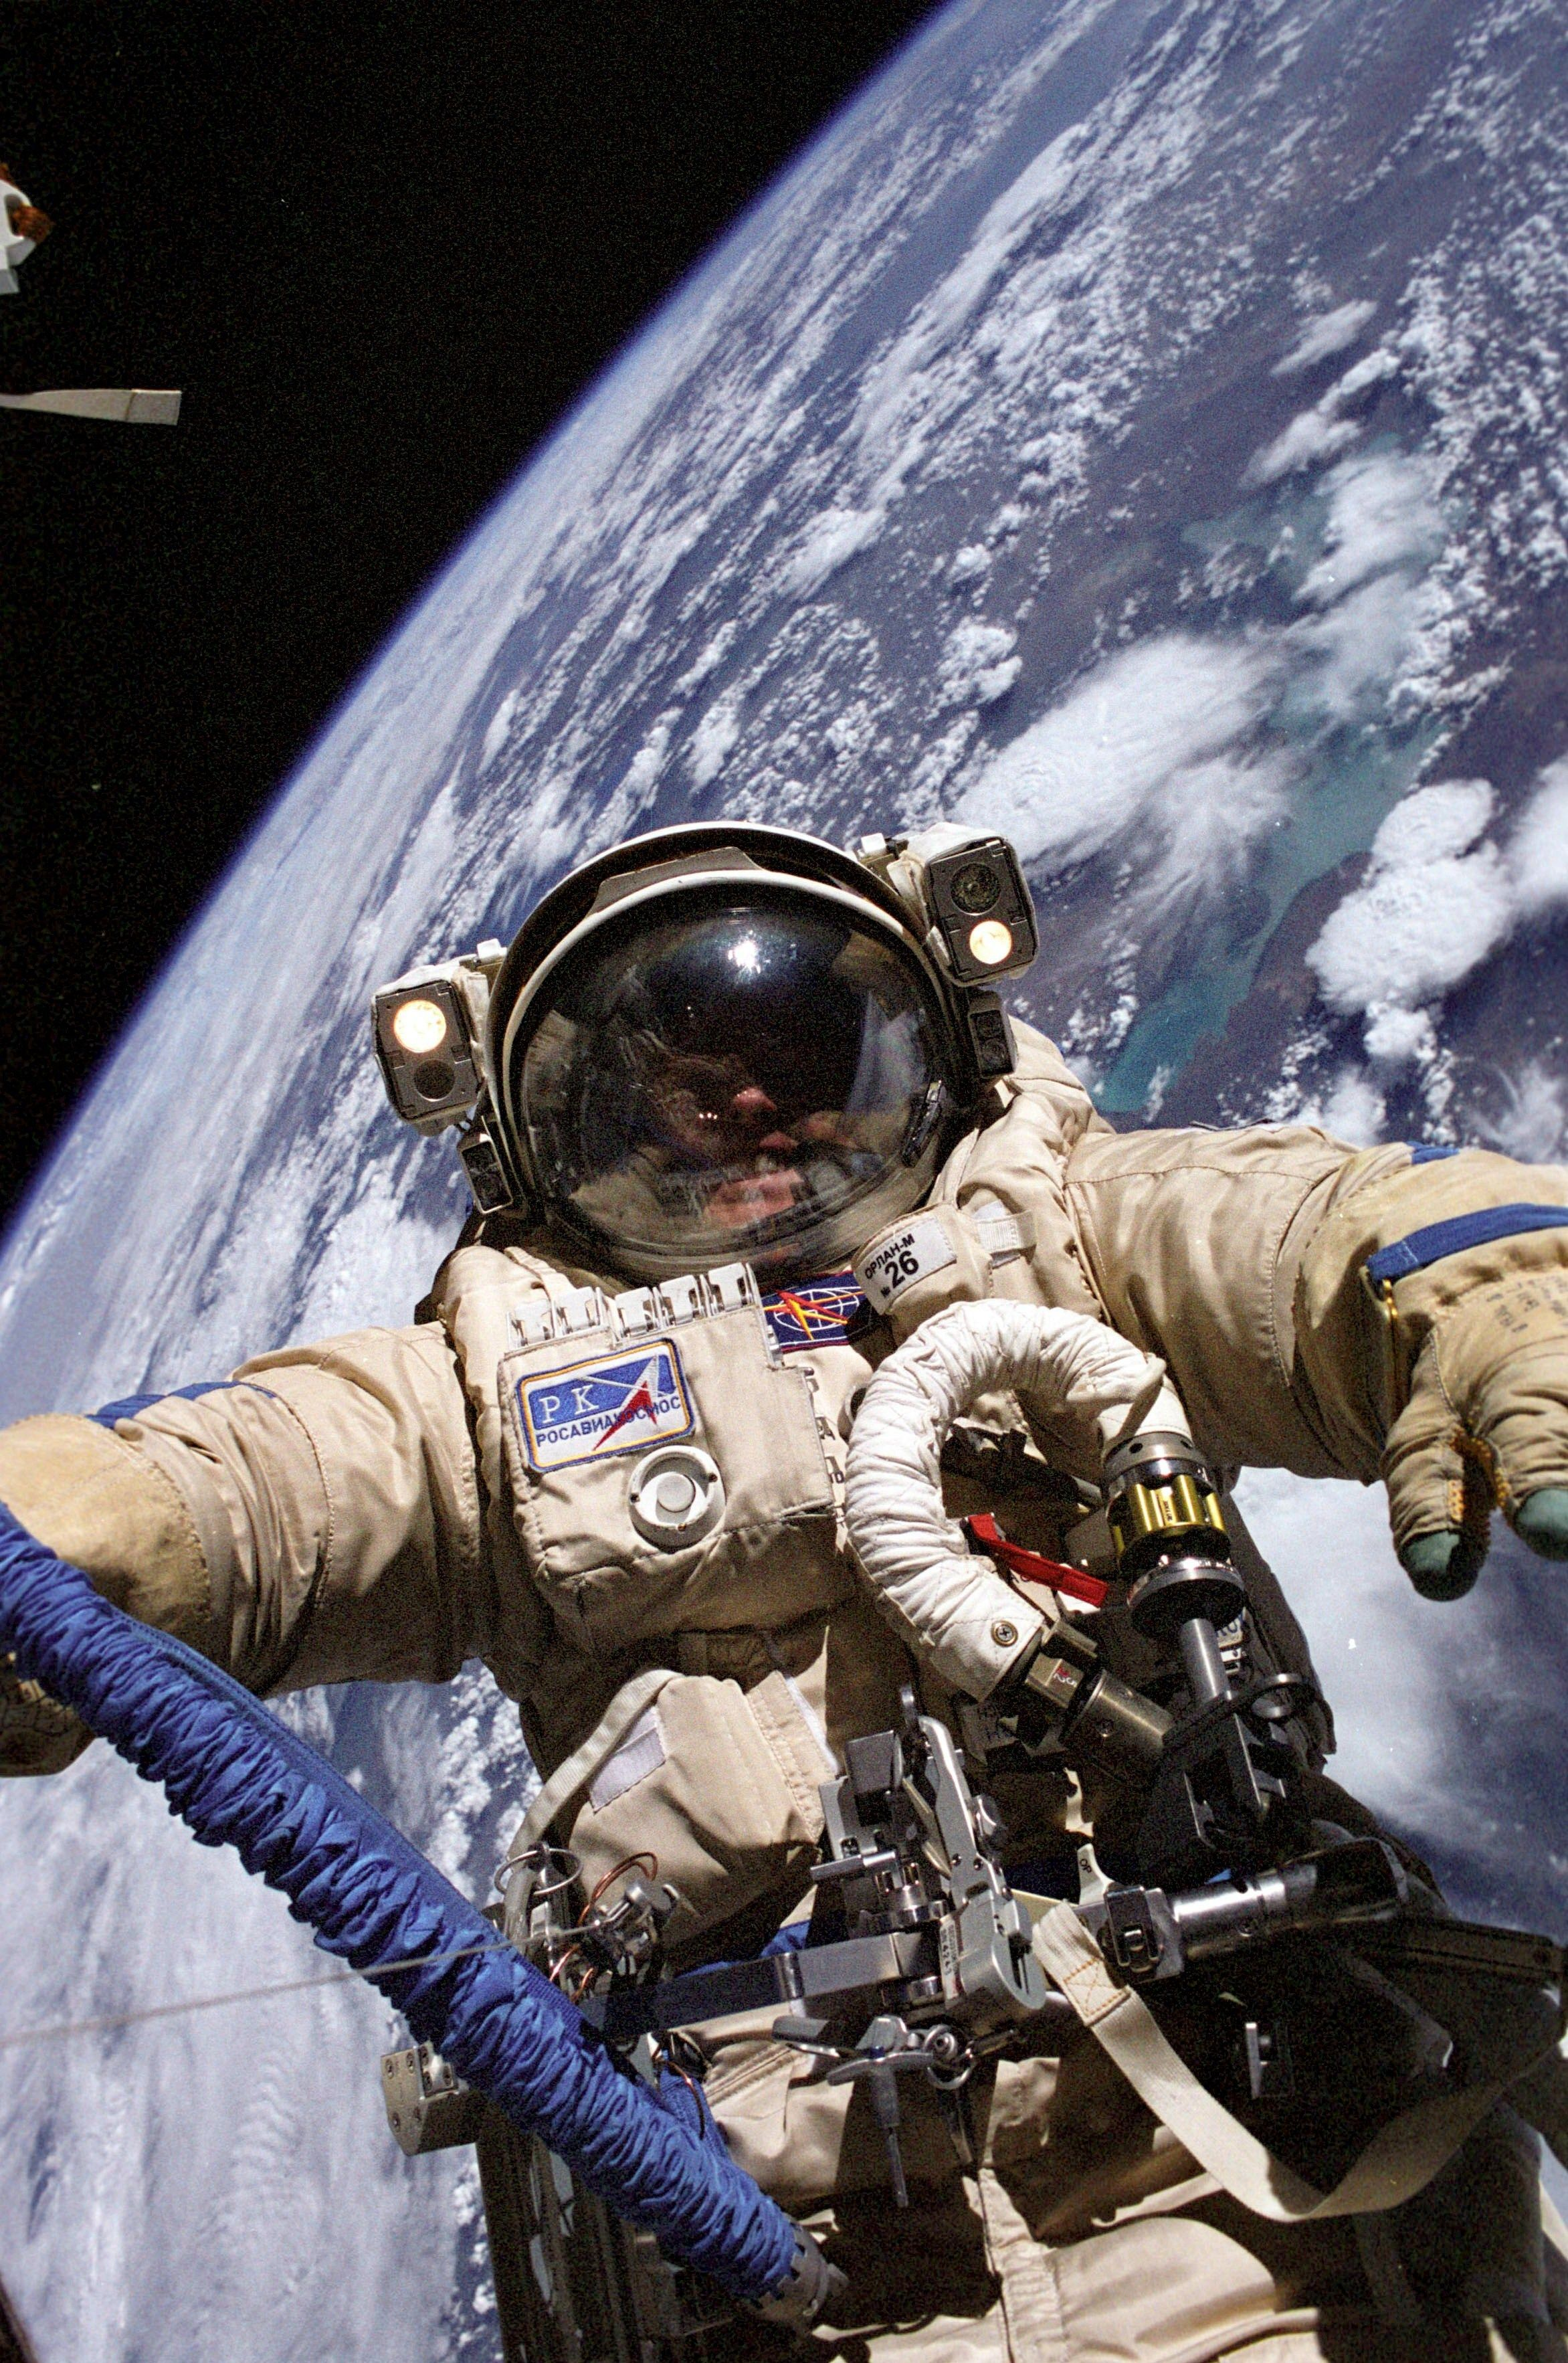 Astroquizzical • Why are NASA s space suits so much clunkier than